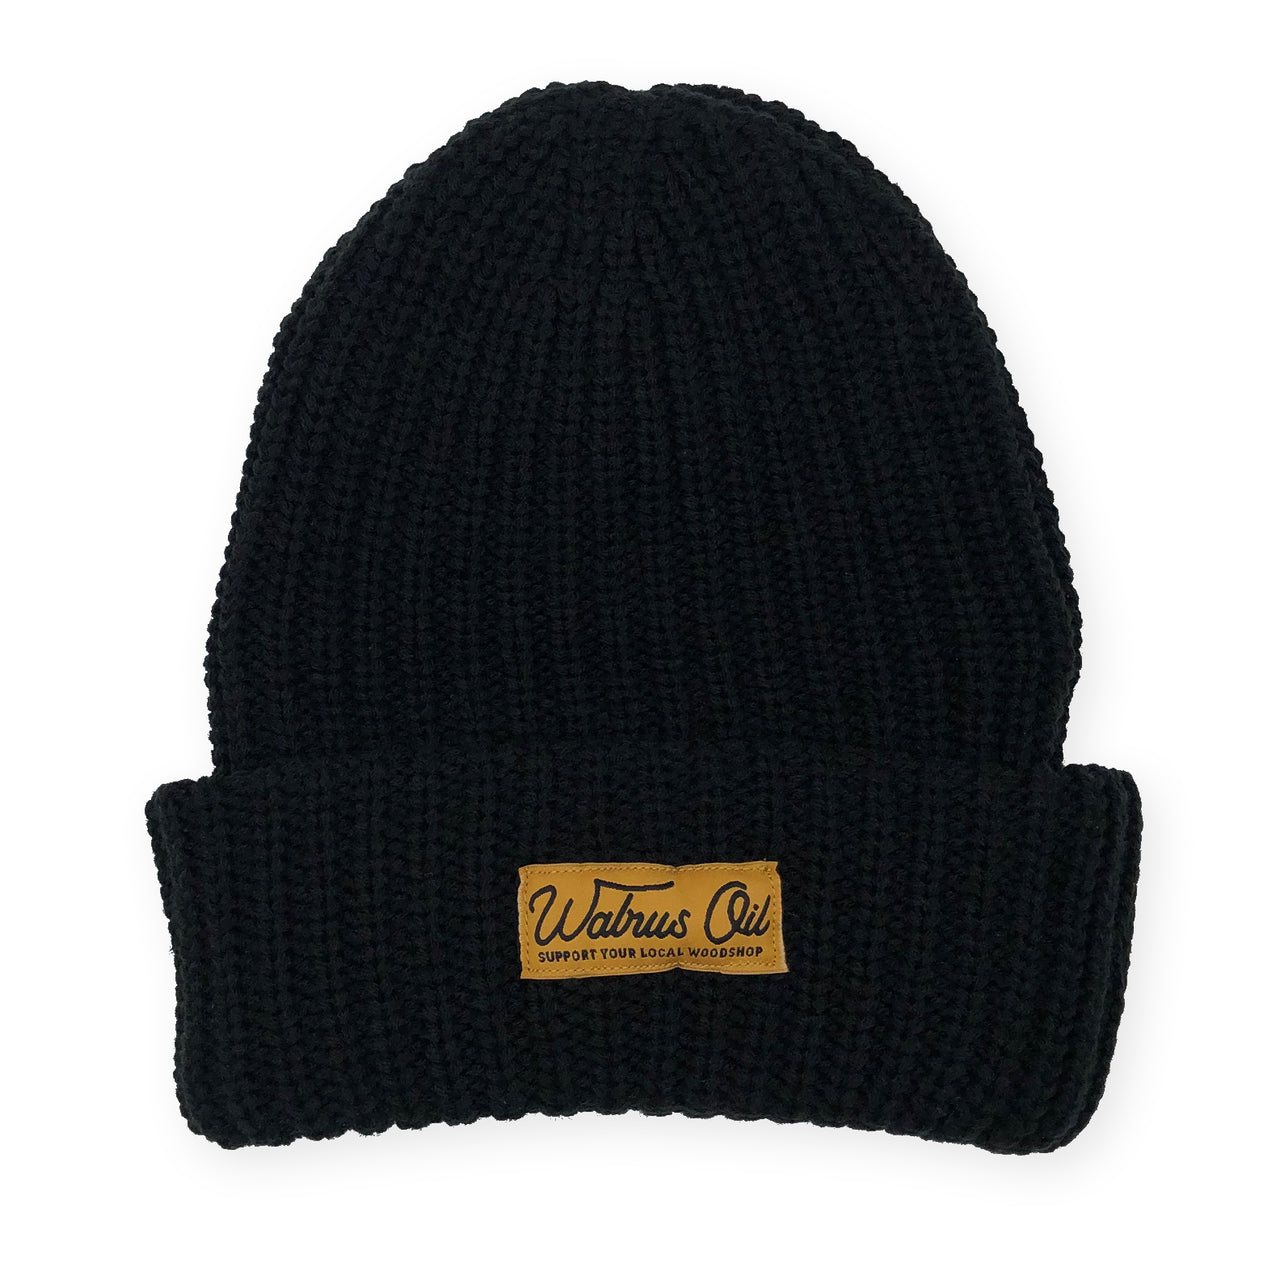 Support Your Local Woodshop, Knit Beanie